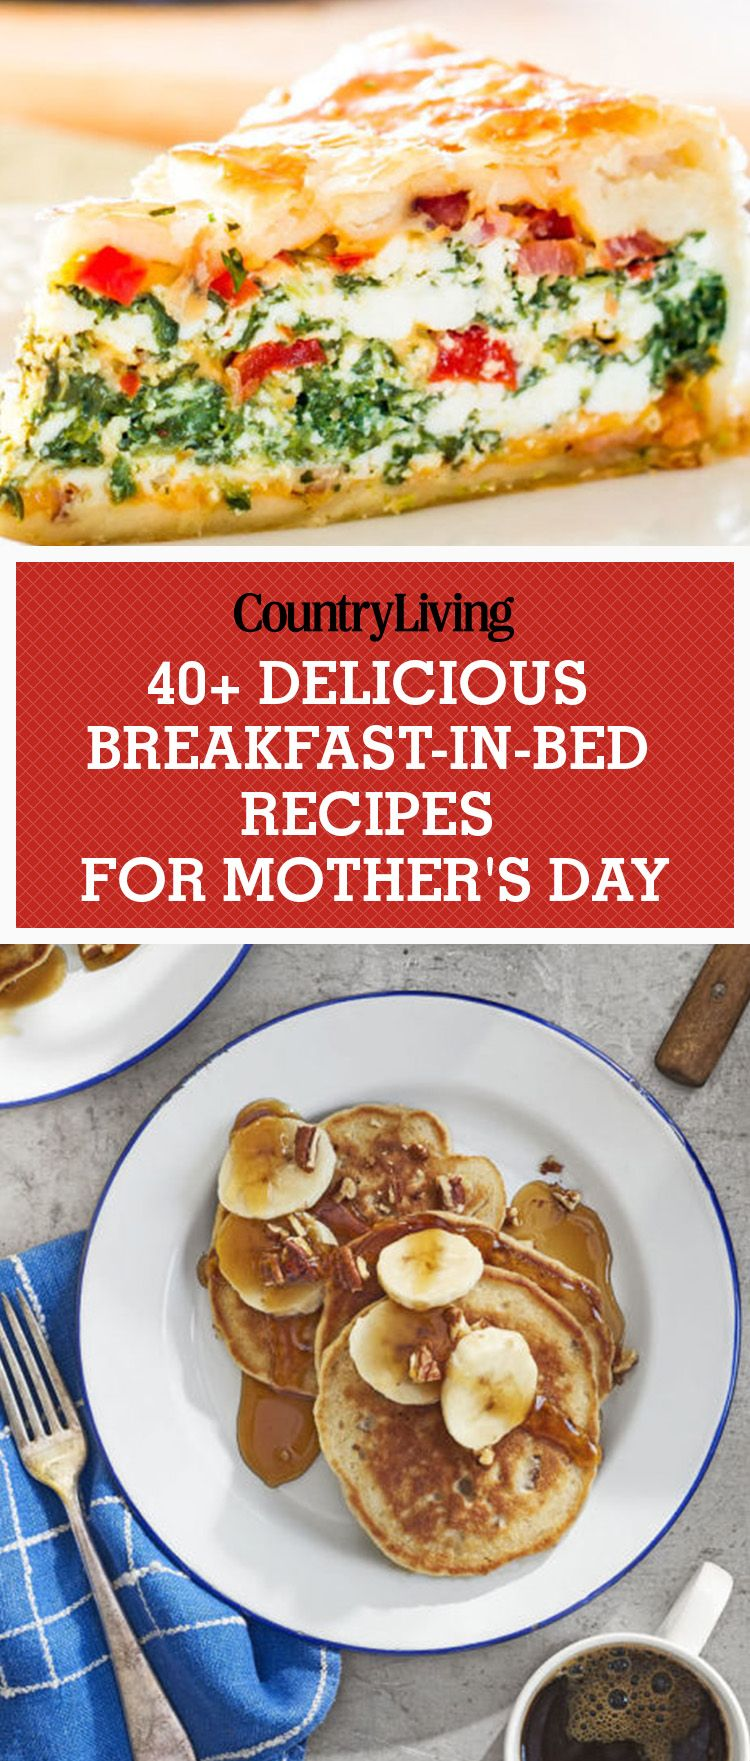 Mothers Day Brunch Recipes: The 5 Best Mothers Day Meals on the Web